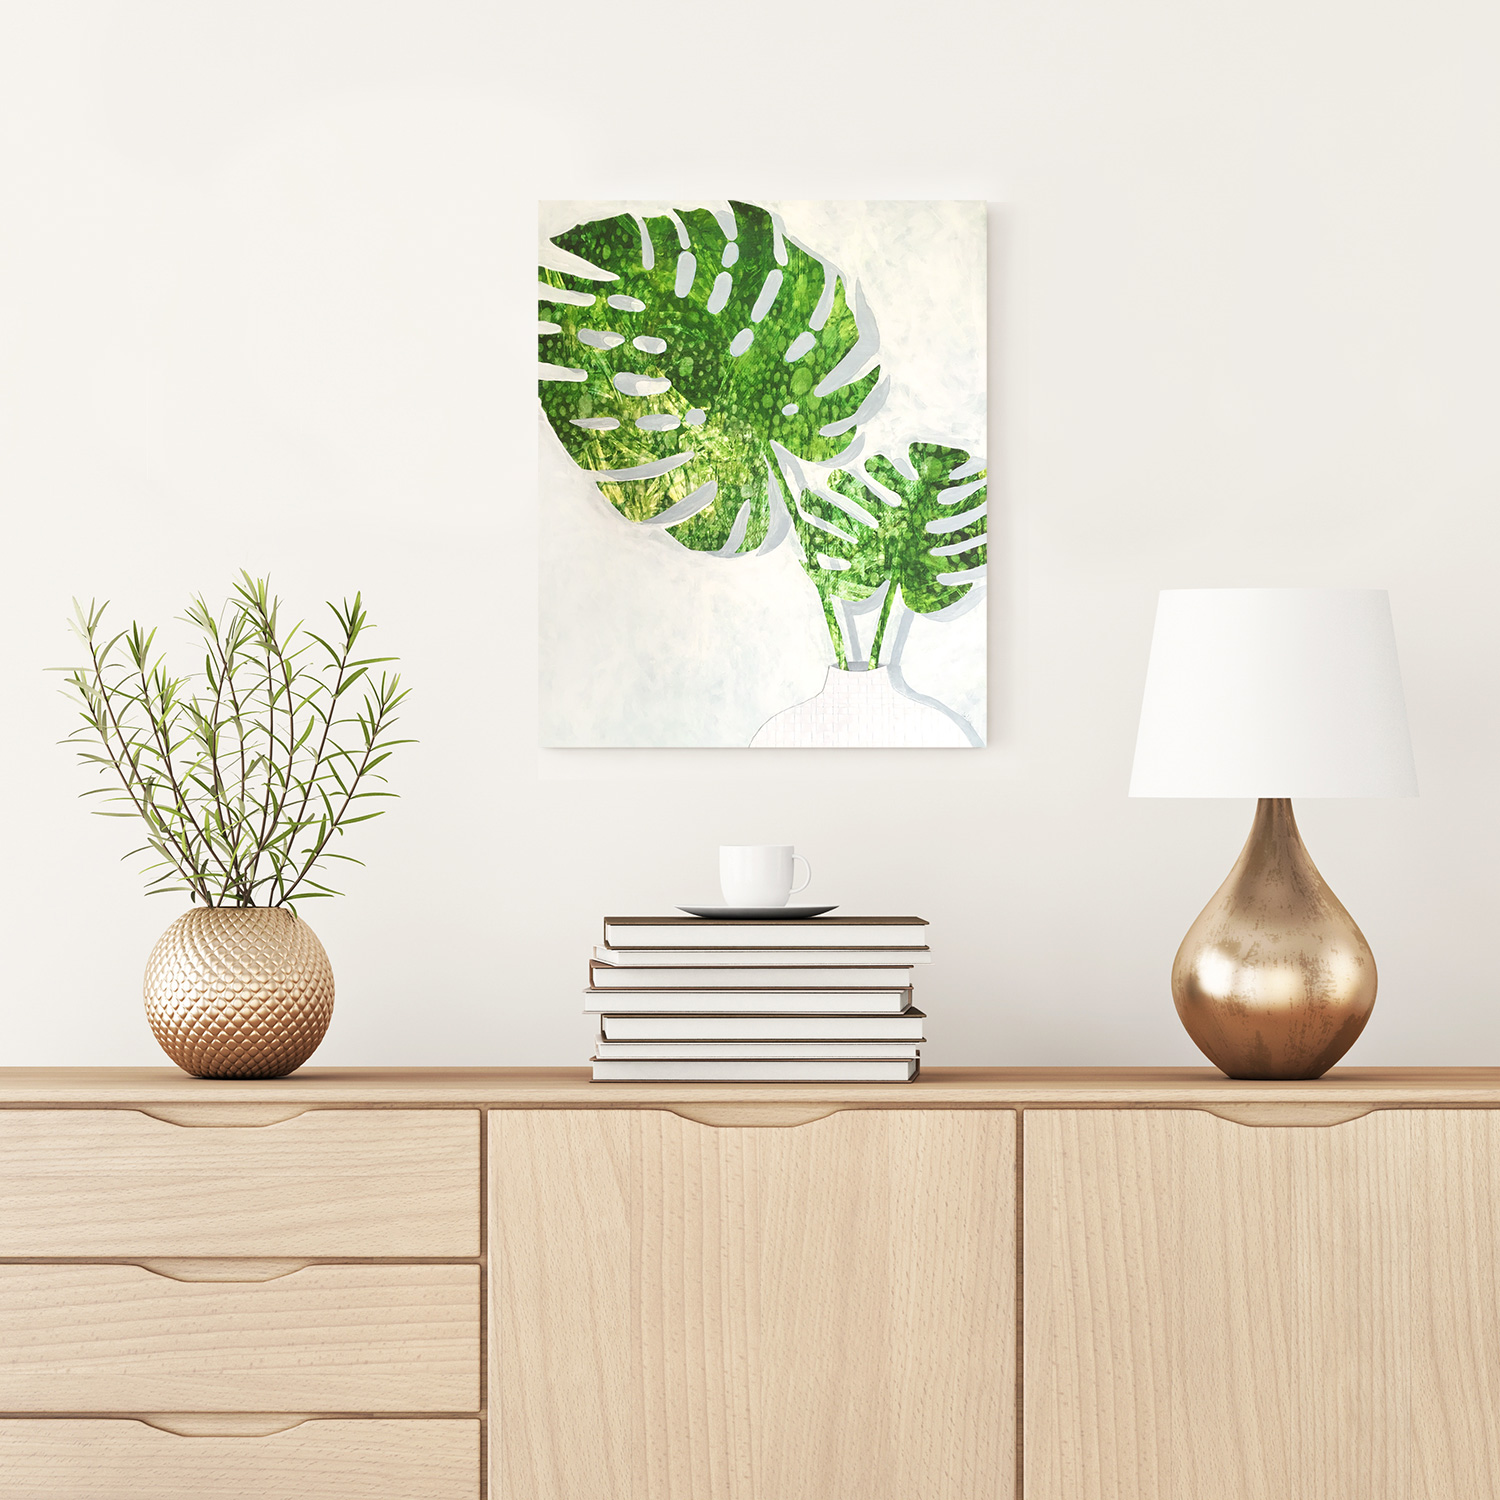 fineart-patterned-plant-monstera-and-vase-int